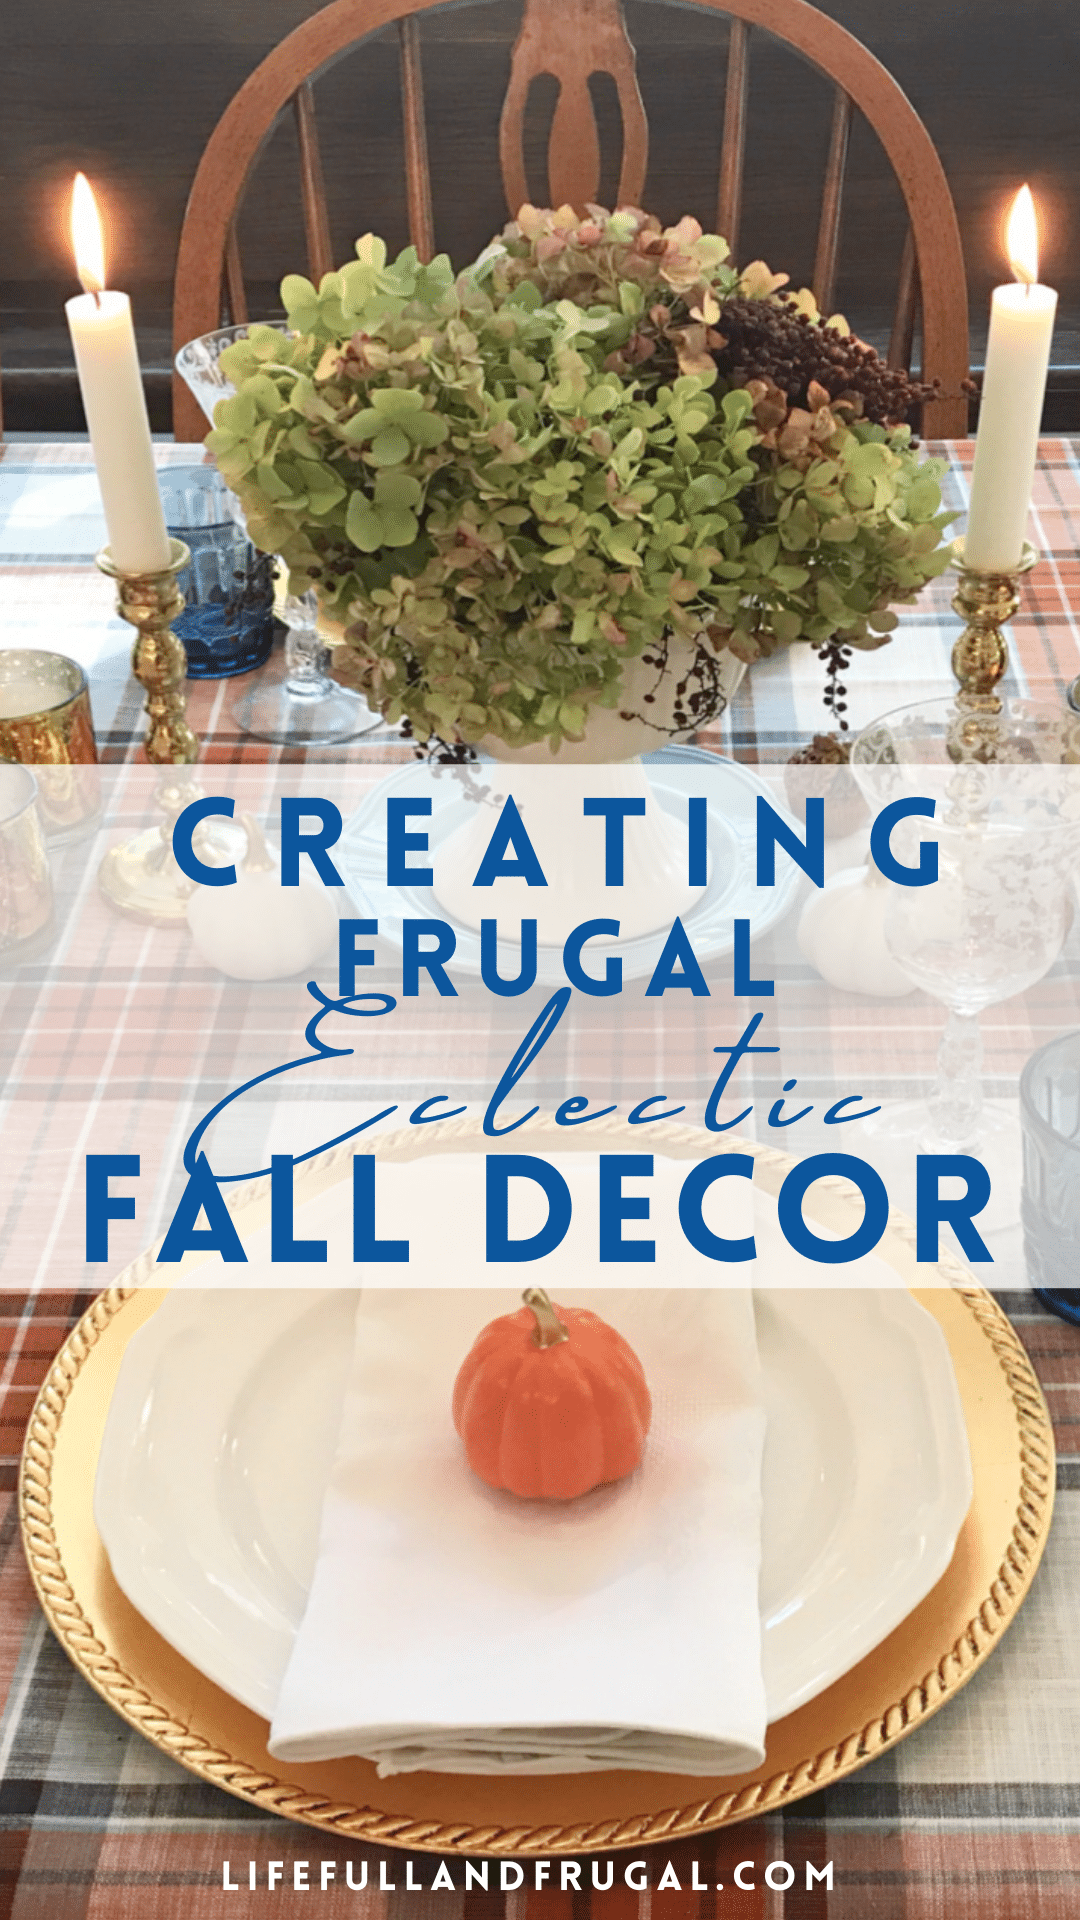 Creating Frugal Eclectic Fall Decor - Life Full and Frugal - fall themed table decor